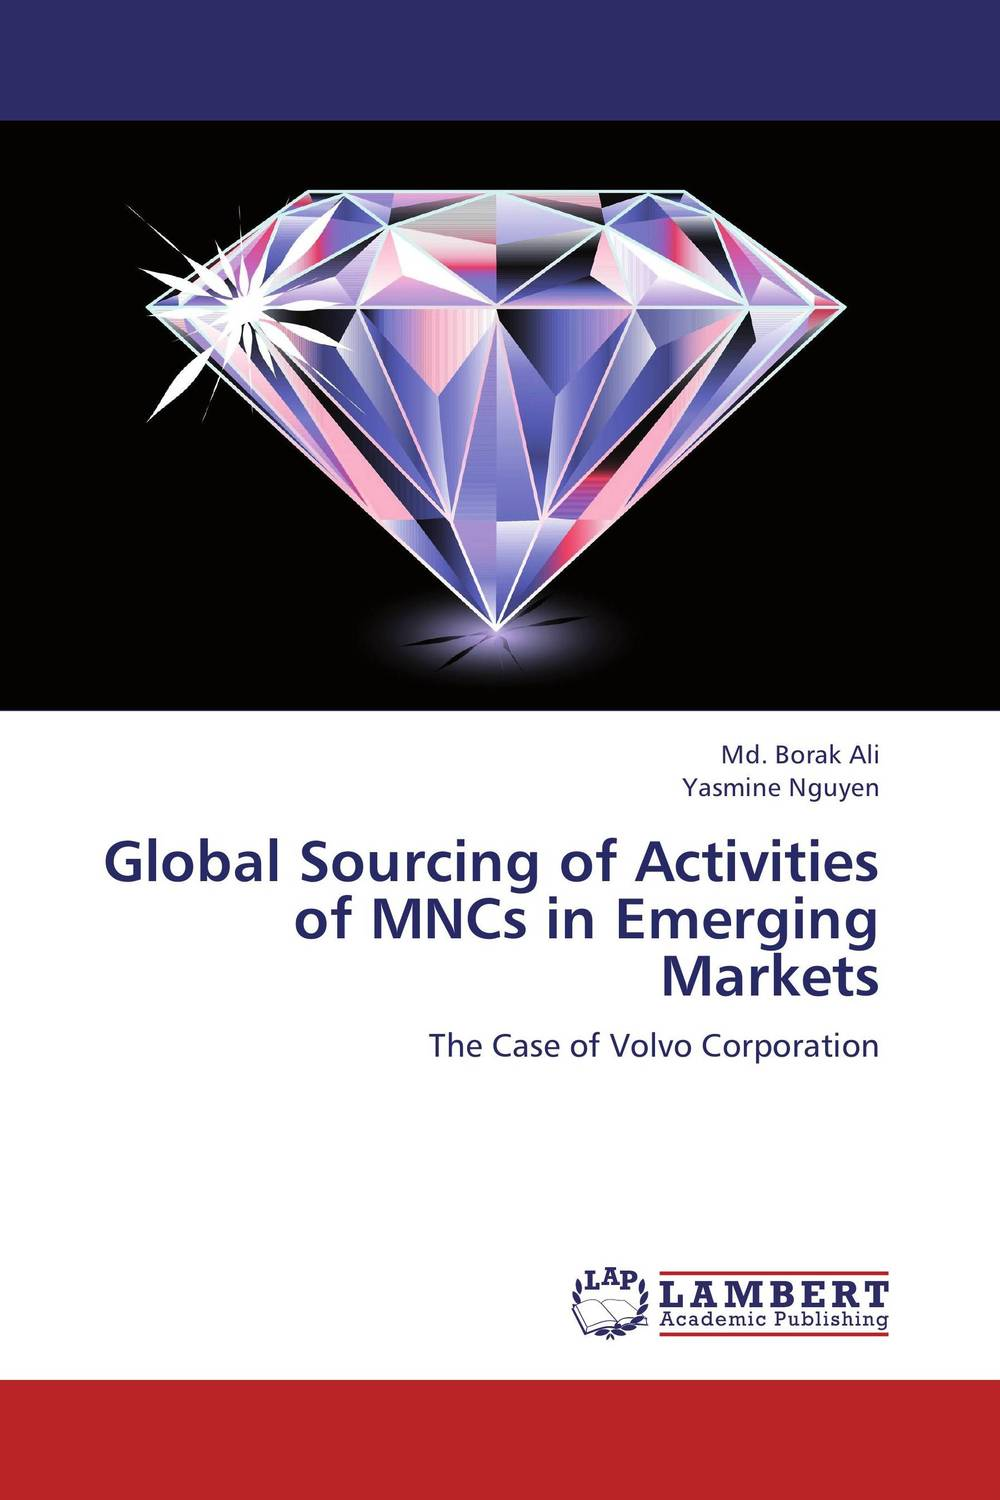 Global Sourcing of Activities of MNCs in Emerging Markets david holloman m china catalyst powering global growth by reaching the fastest growing consumer market in the world